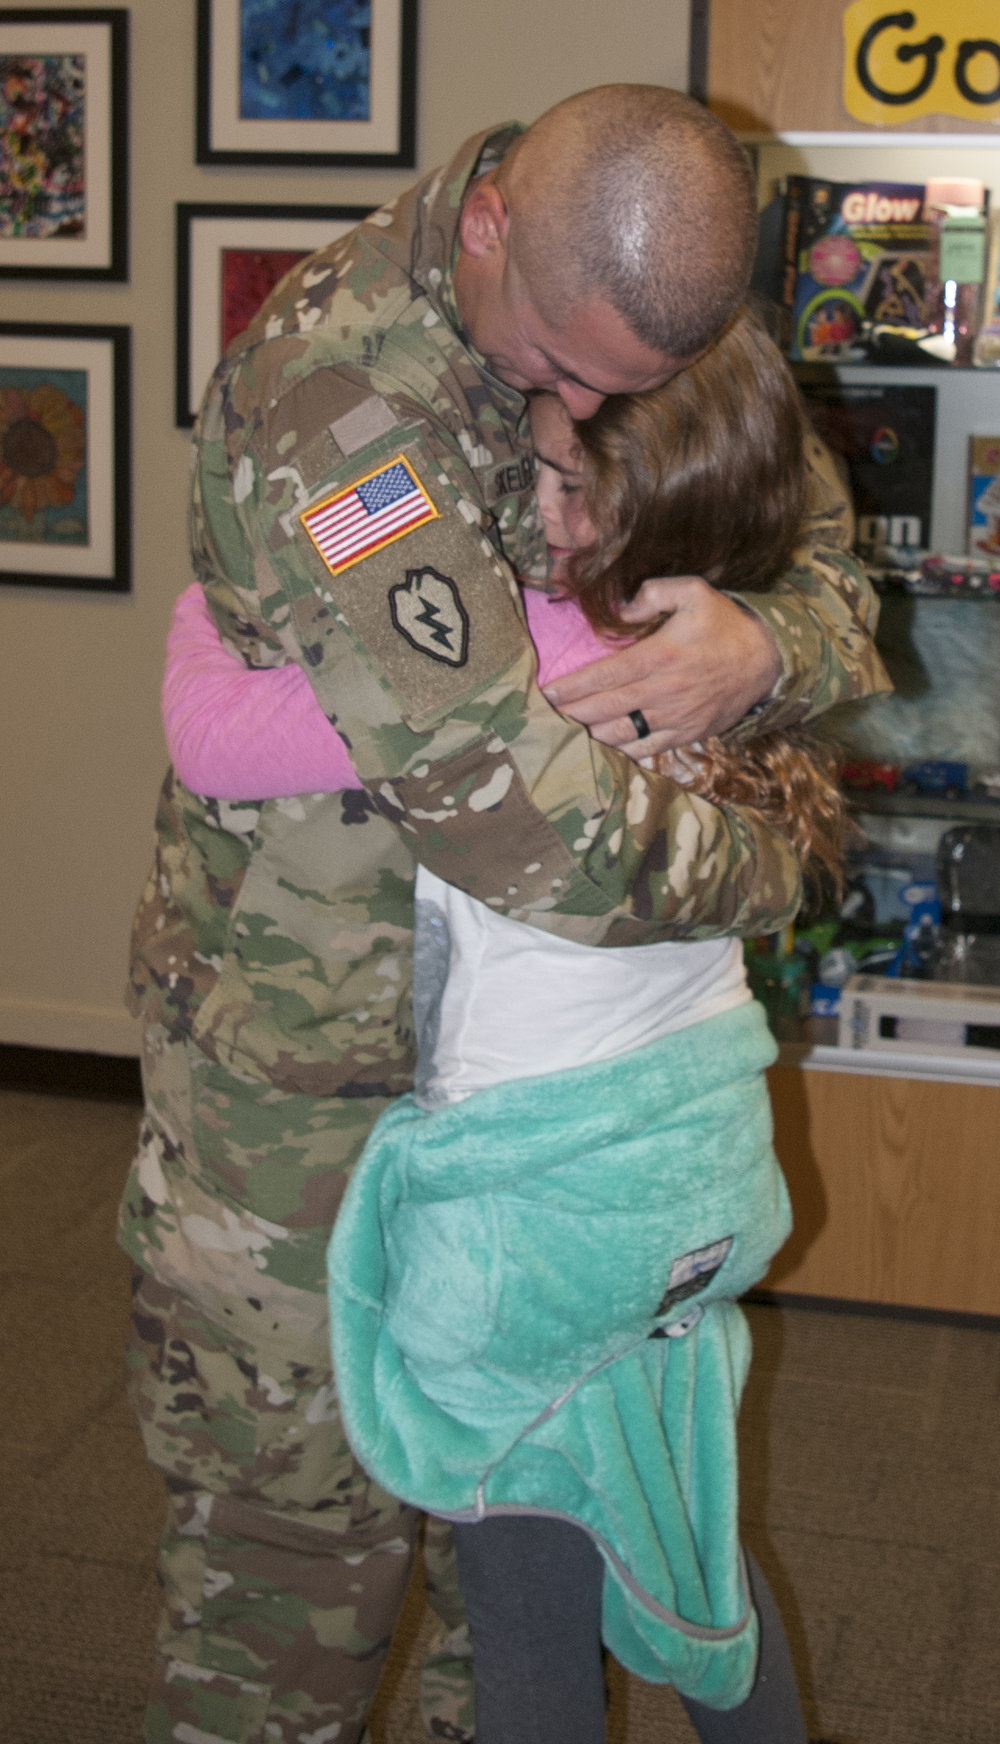 JEANETTE BROWNING FAUBION/Citizen photo U.S. Army Master Sgt. Scott Skellenger surprised his daughter Chloe with an early return from deployment in Kuwait at Union Chapel Elementary School, where Chloe attends fourth grade. Later, the two traveled to Plaza Middle School to surprise his son Gavin in a separate event.